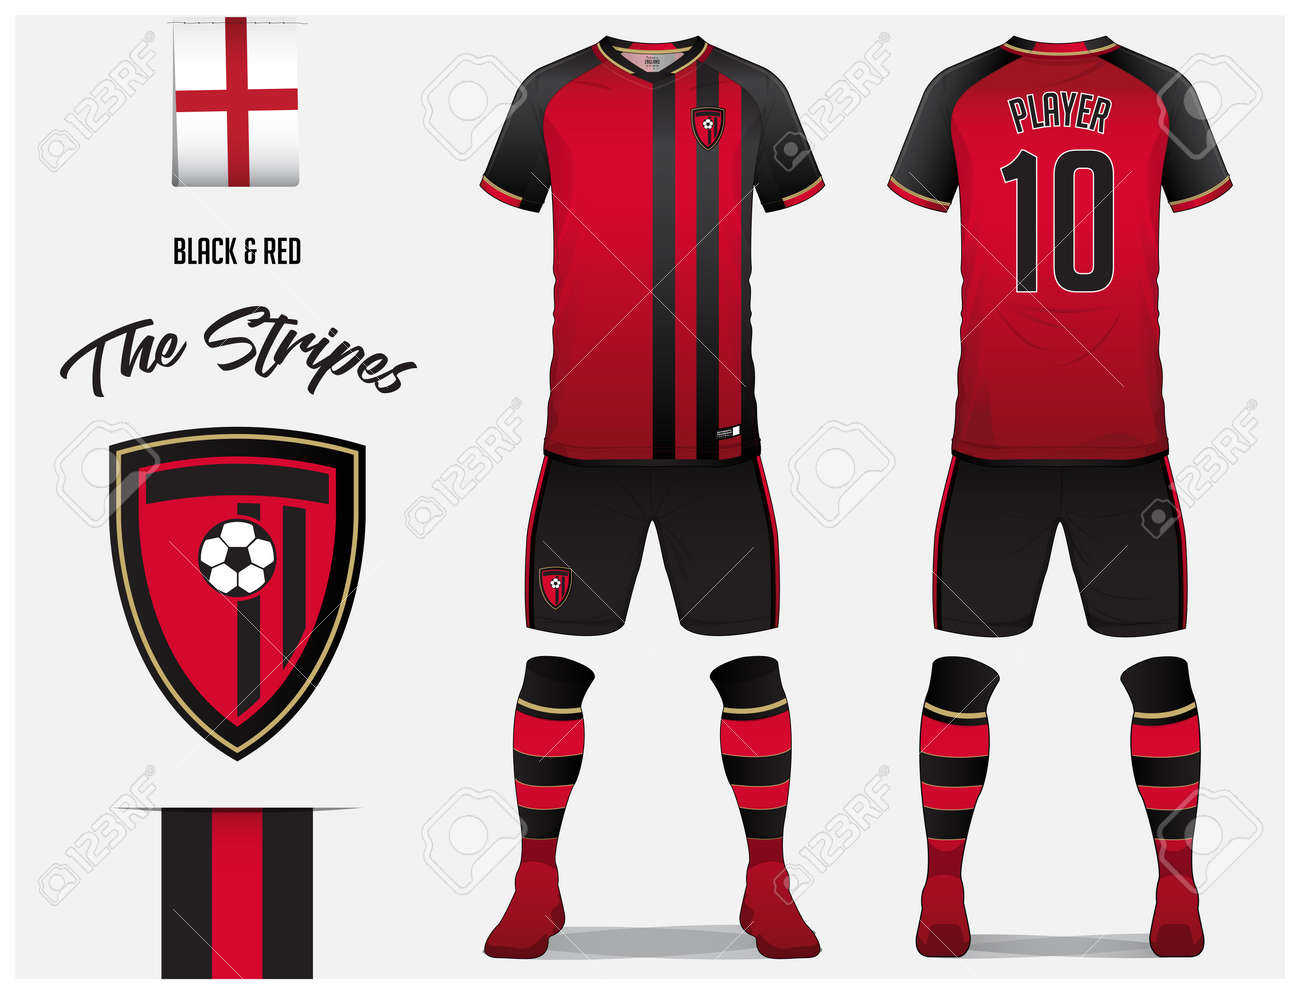 8a87d6202f9 Soccer jersey or football kit template for football club. Red and black  stripe football shirt with sock and short mock up. Front and back view  soccer ...